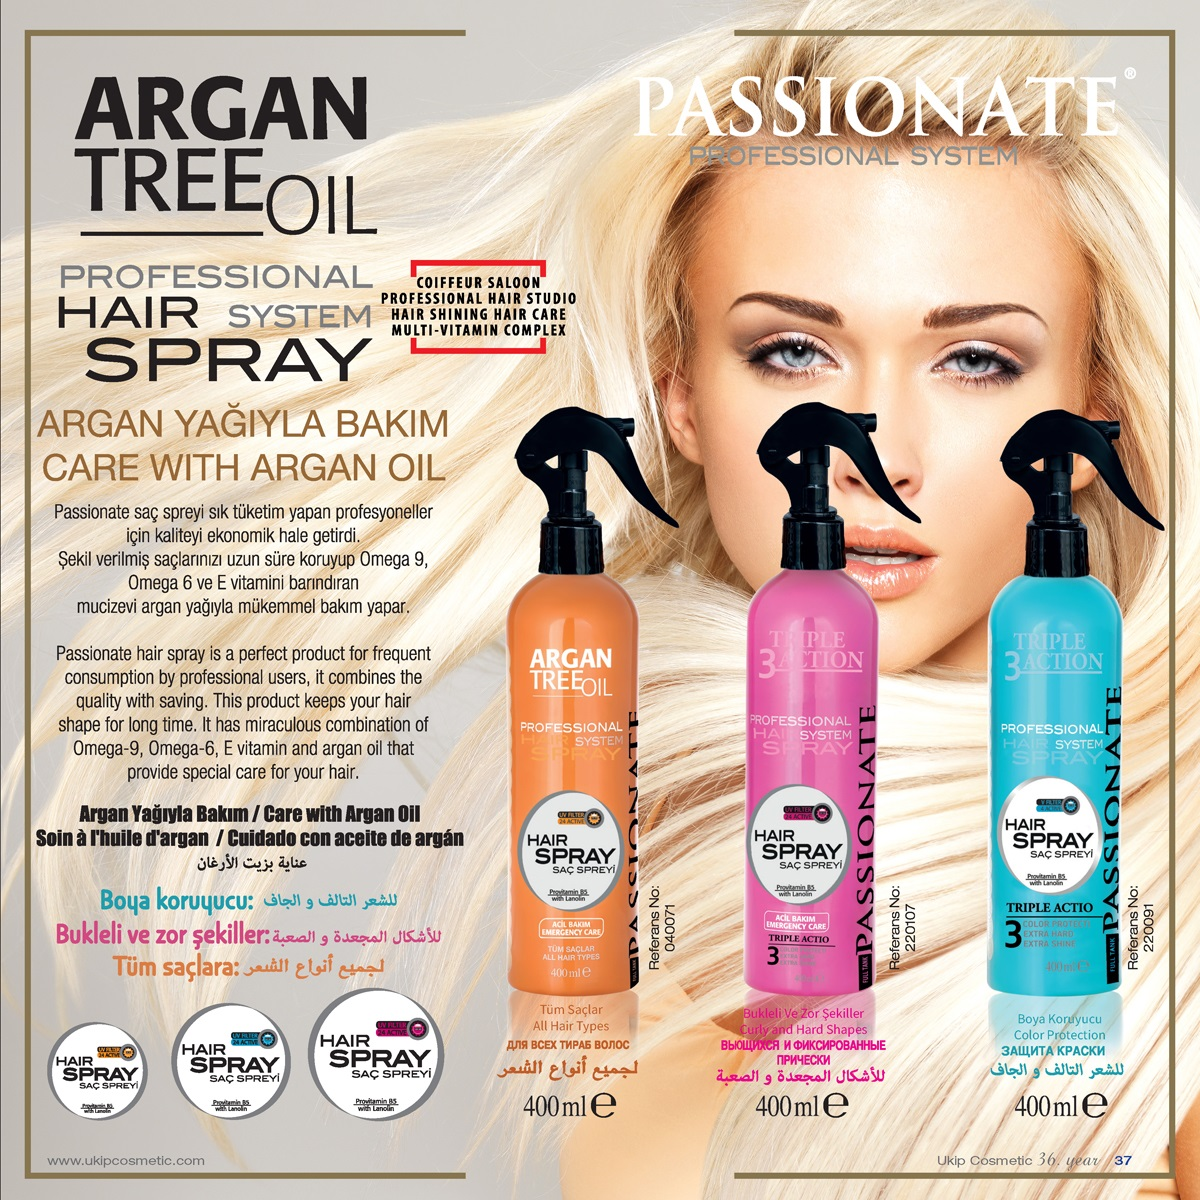 Passionate Professional System Hair Spray